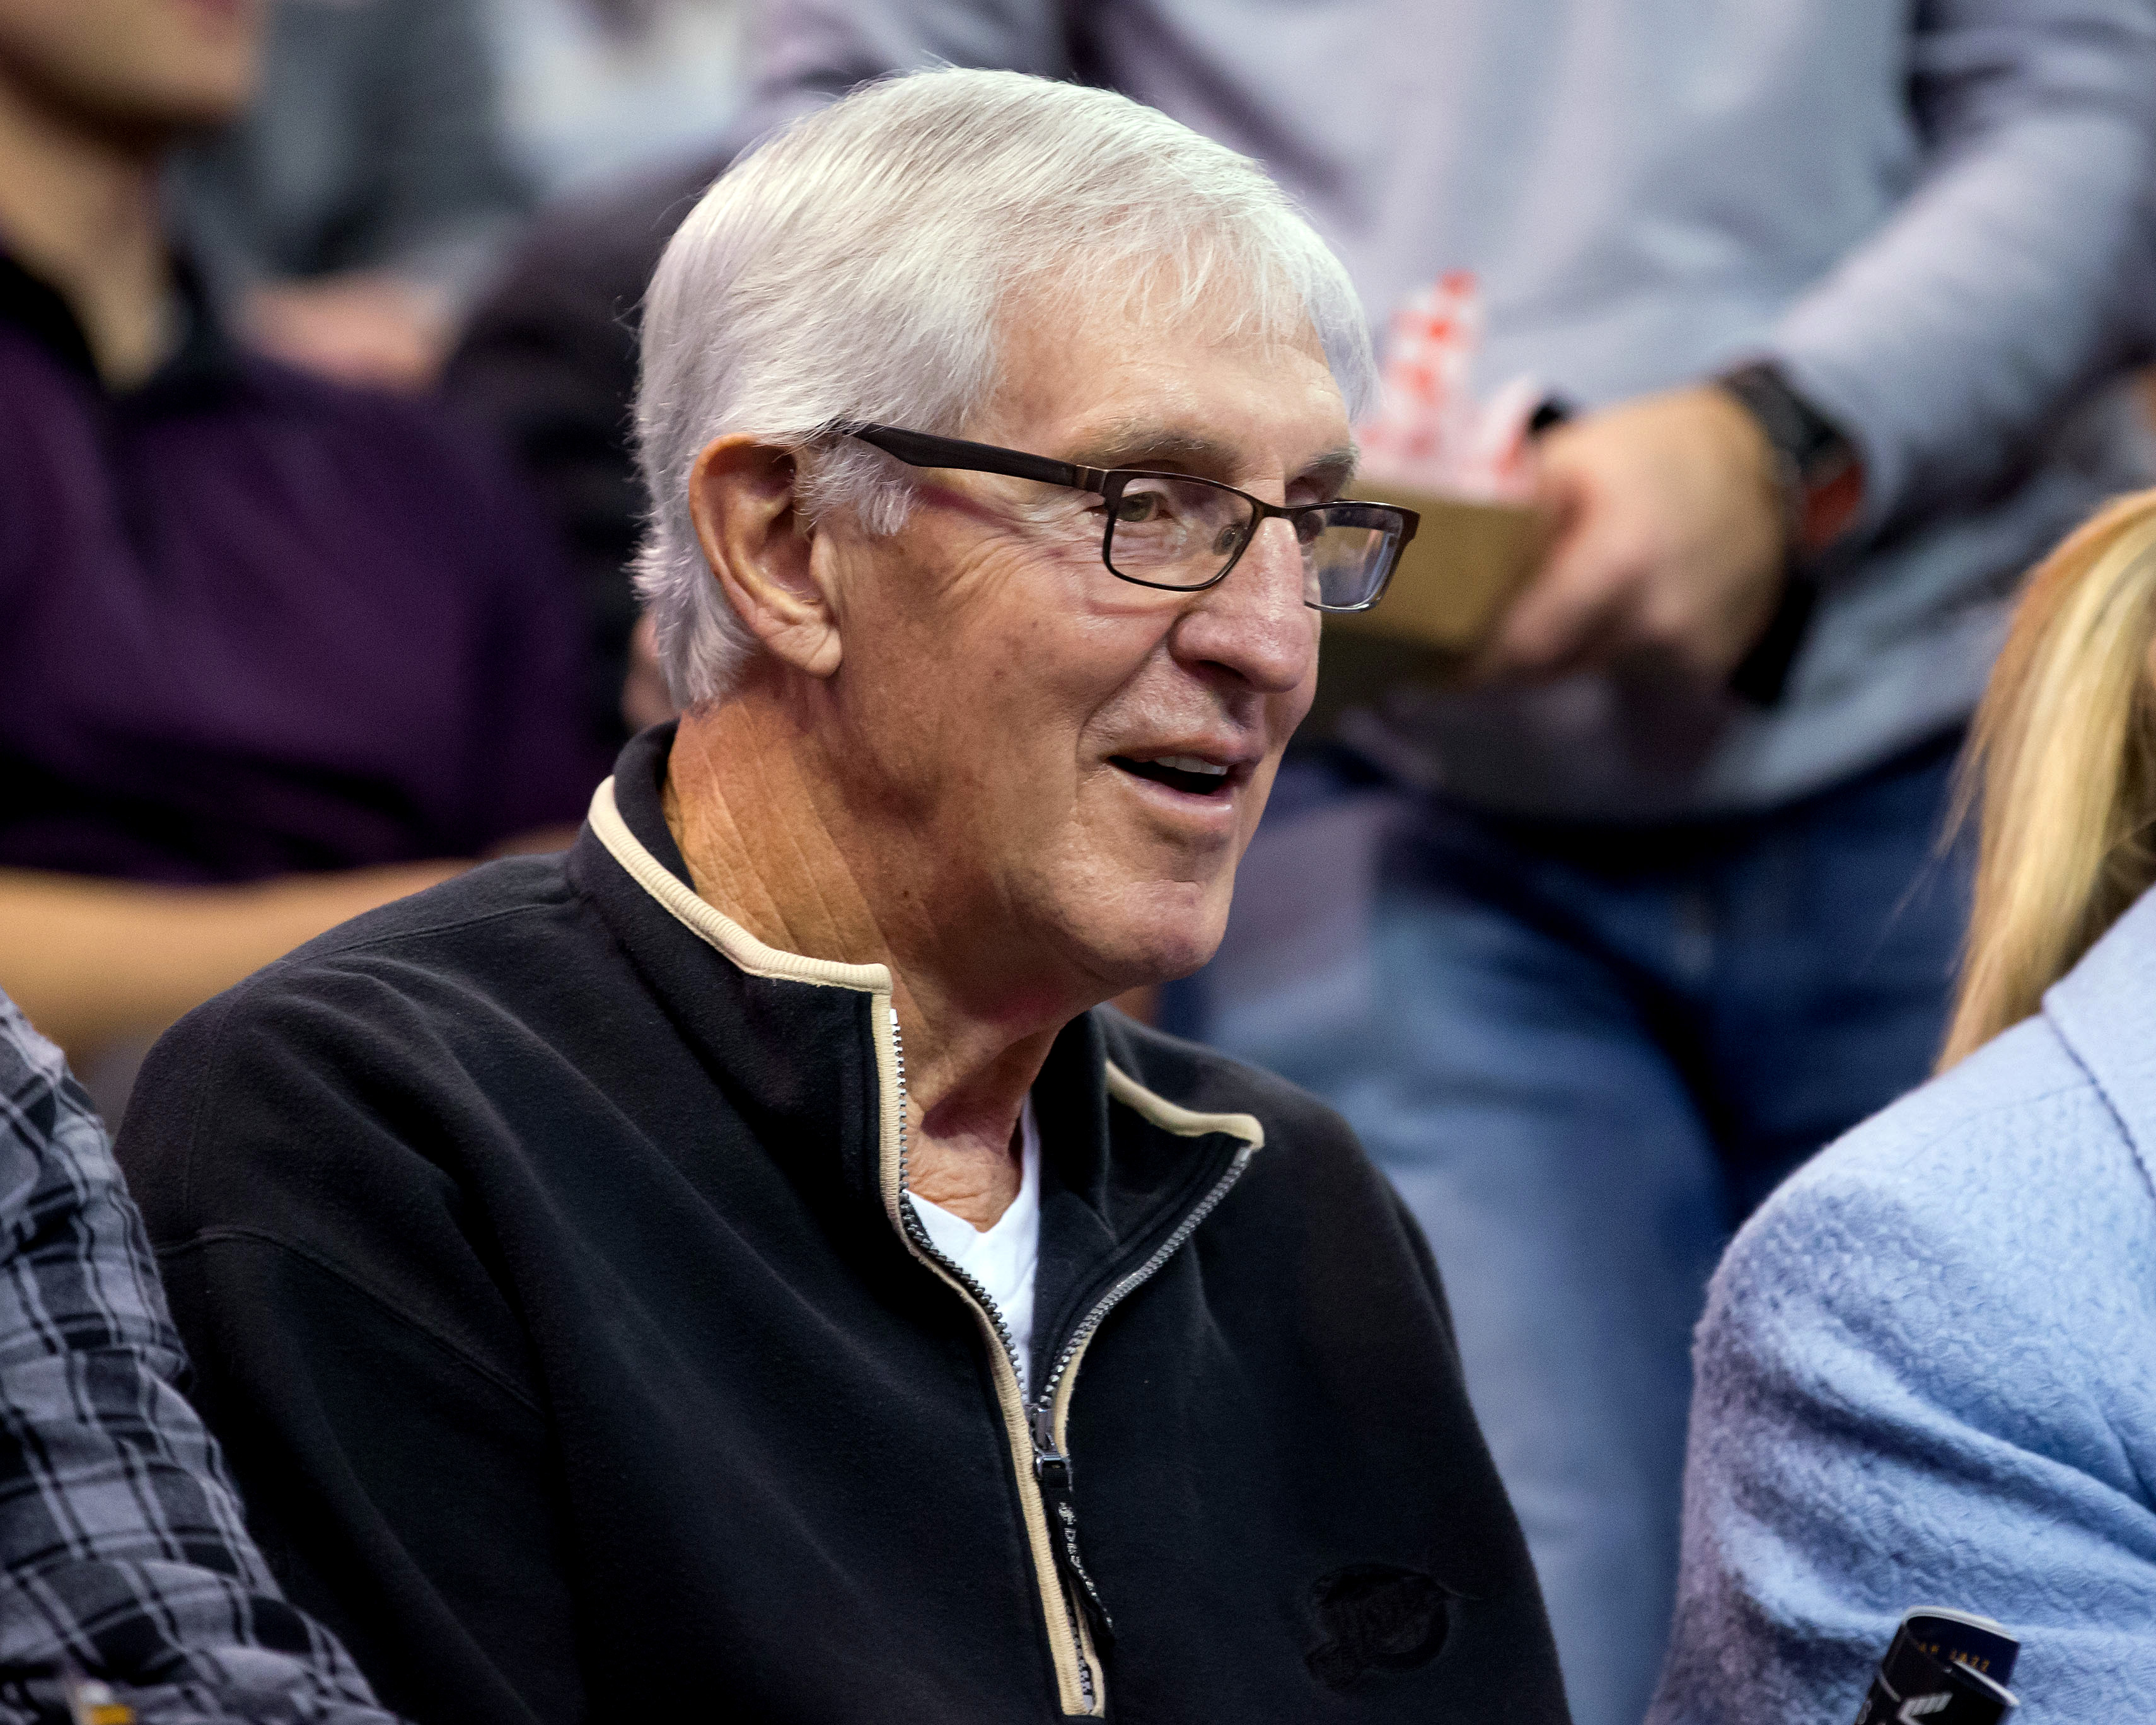 Jerry Sloan will be remembered for his longevity